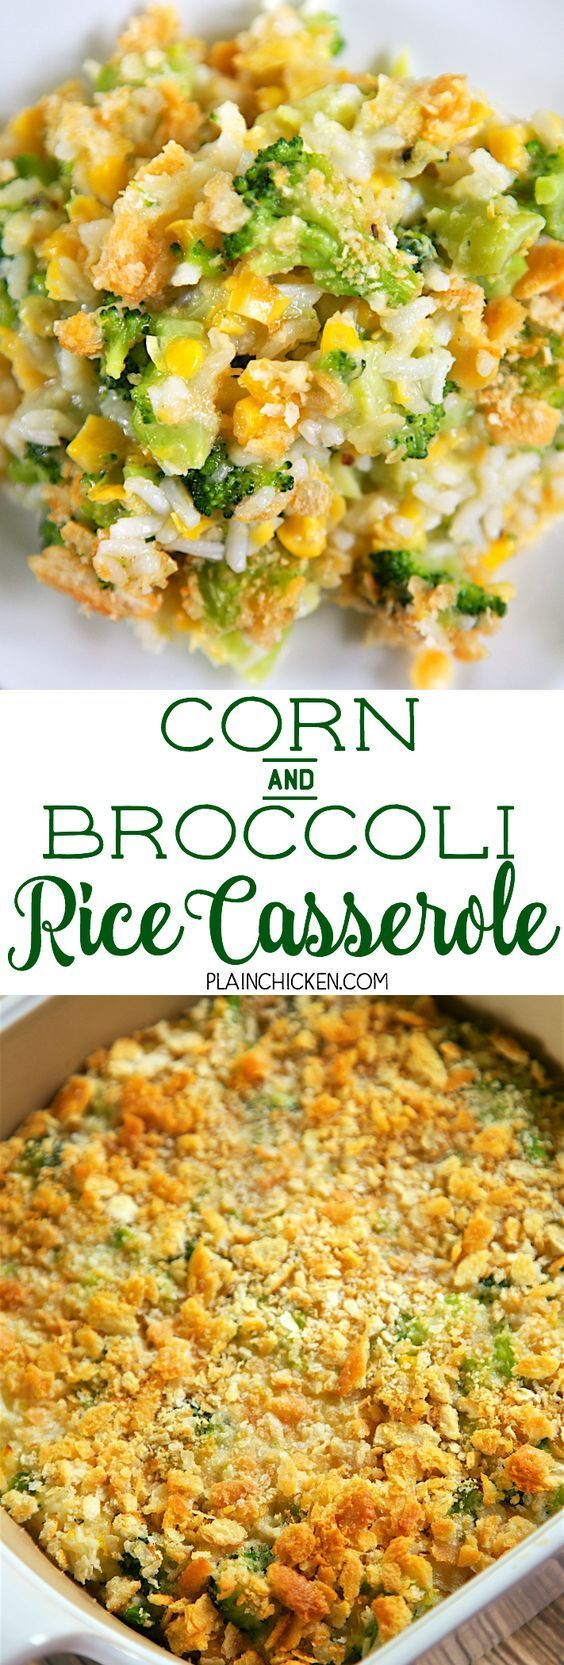 and Broccoli Rice Casserole Corn and Broccoli Rice Casserole - so simple and SO delicious! Everyone cleaned their plates - even our picky broccoli haters! Cooked rice, creamed corn, broccoli, onion and garlic topped with butter and crushed Ritz crackers. You might want to double the recipe for this quick side dish - this didn't last long in our house!C...